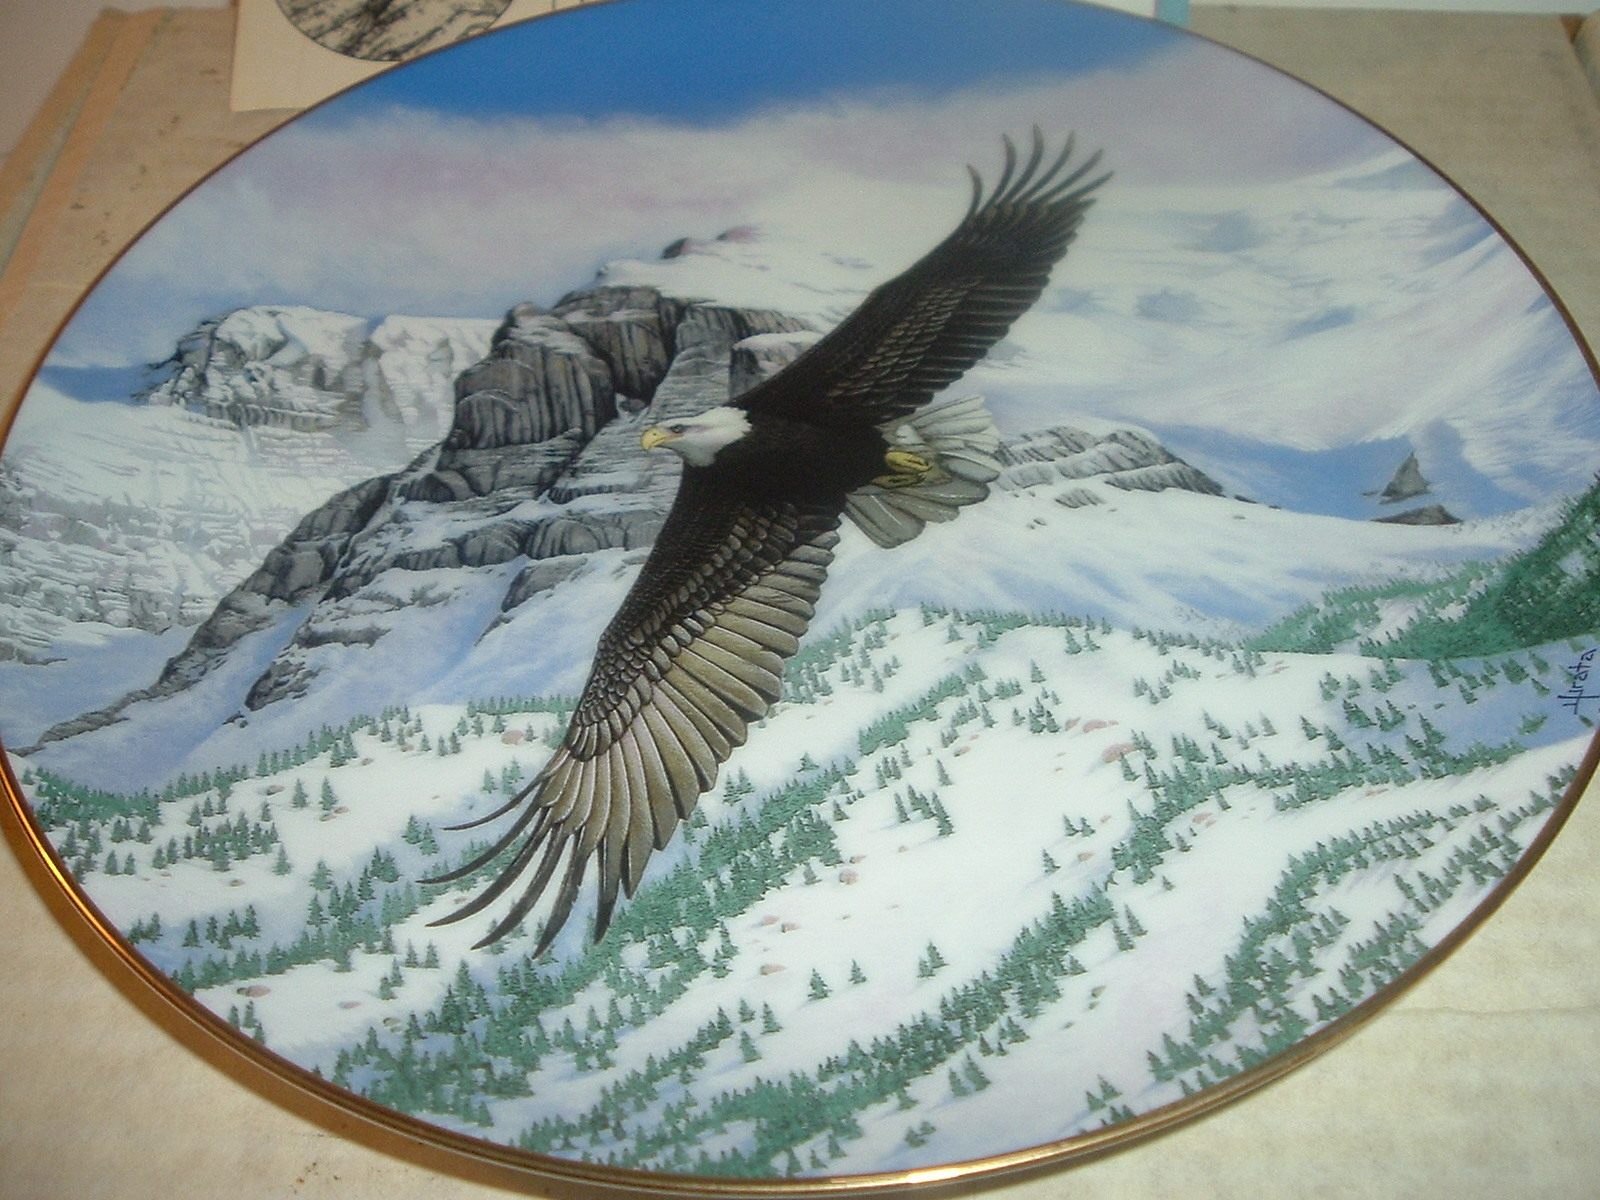 1988 Hamilton Collection The Eagle Soars Plate w/ COA and Box